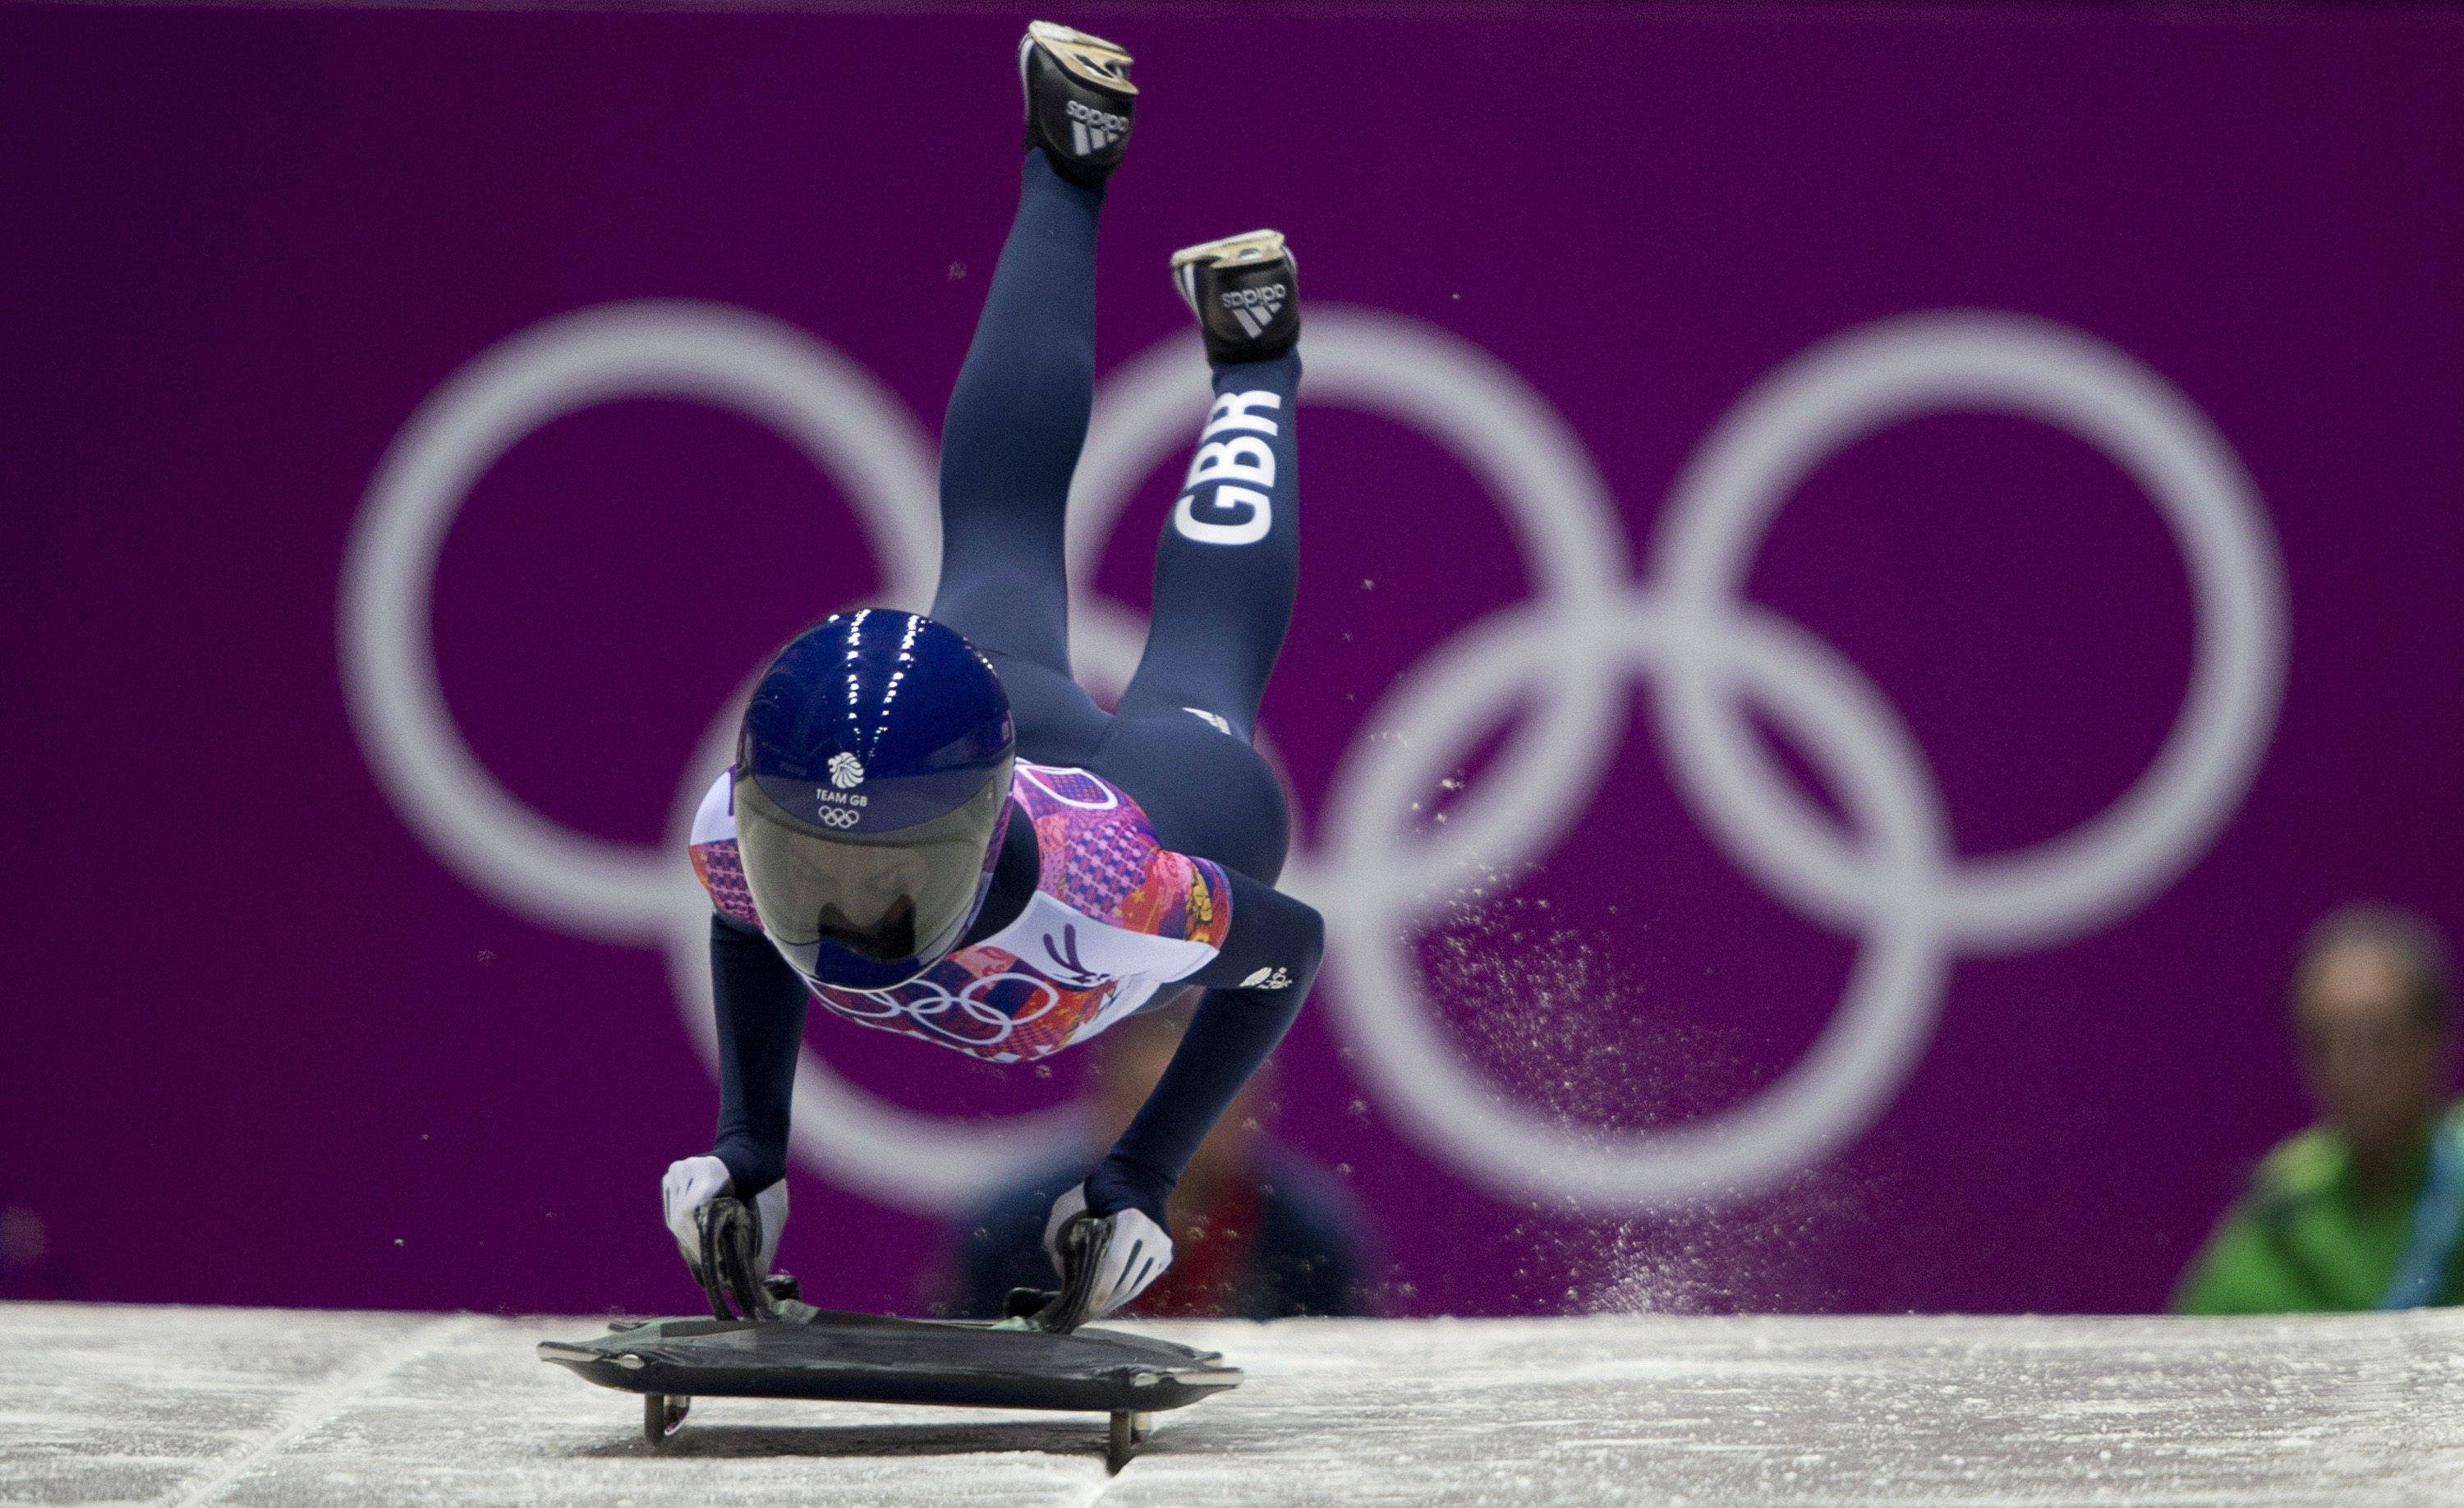 Shelley Rudman of Great Britain starts her run during the women's skeleton competition.